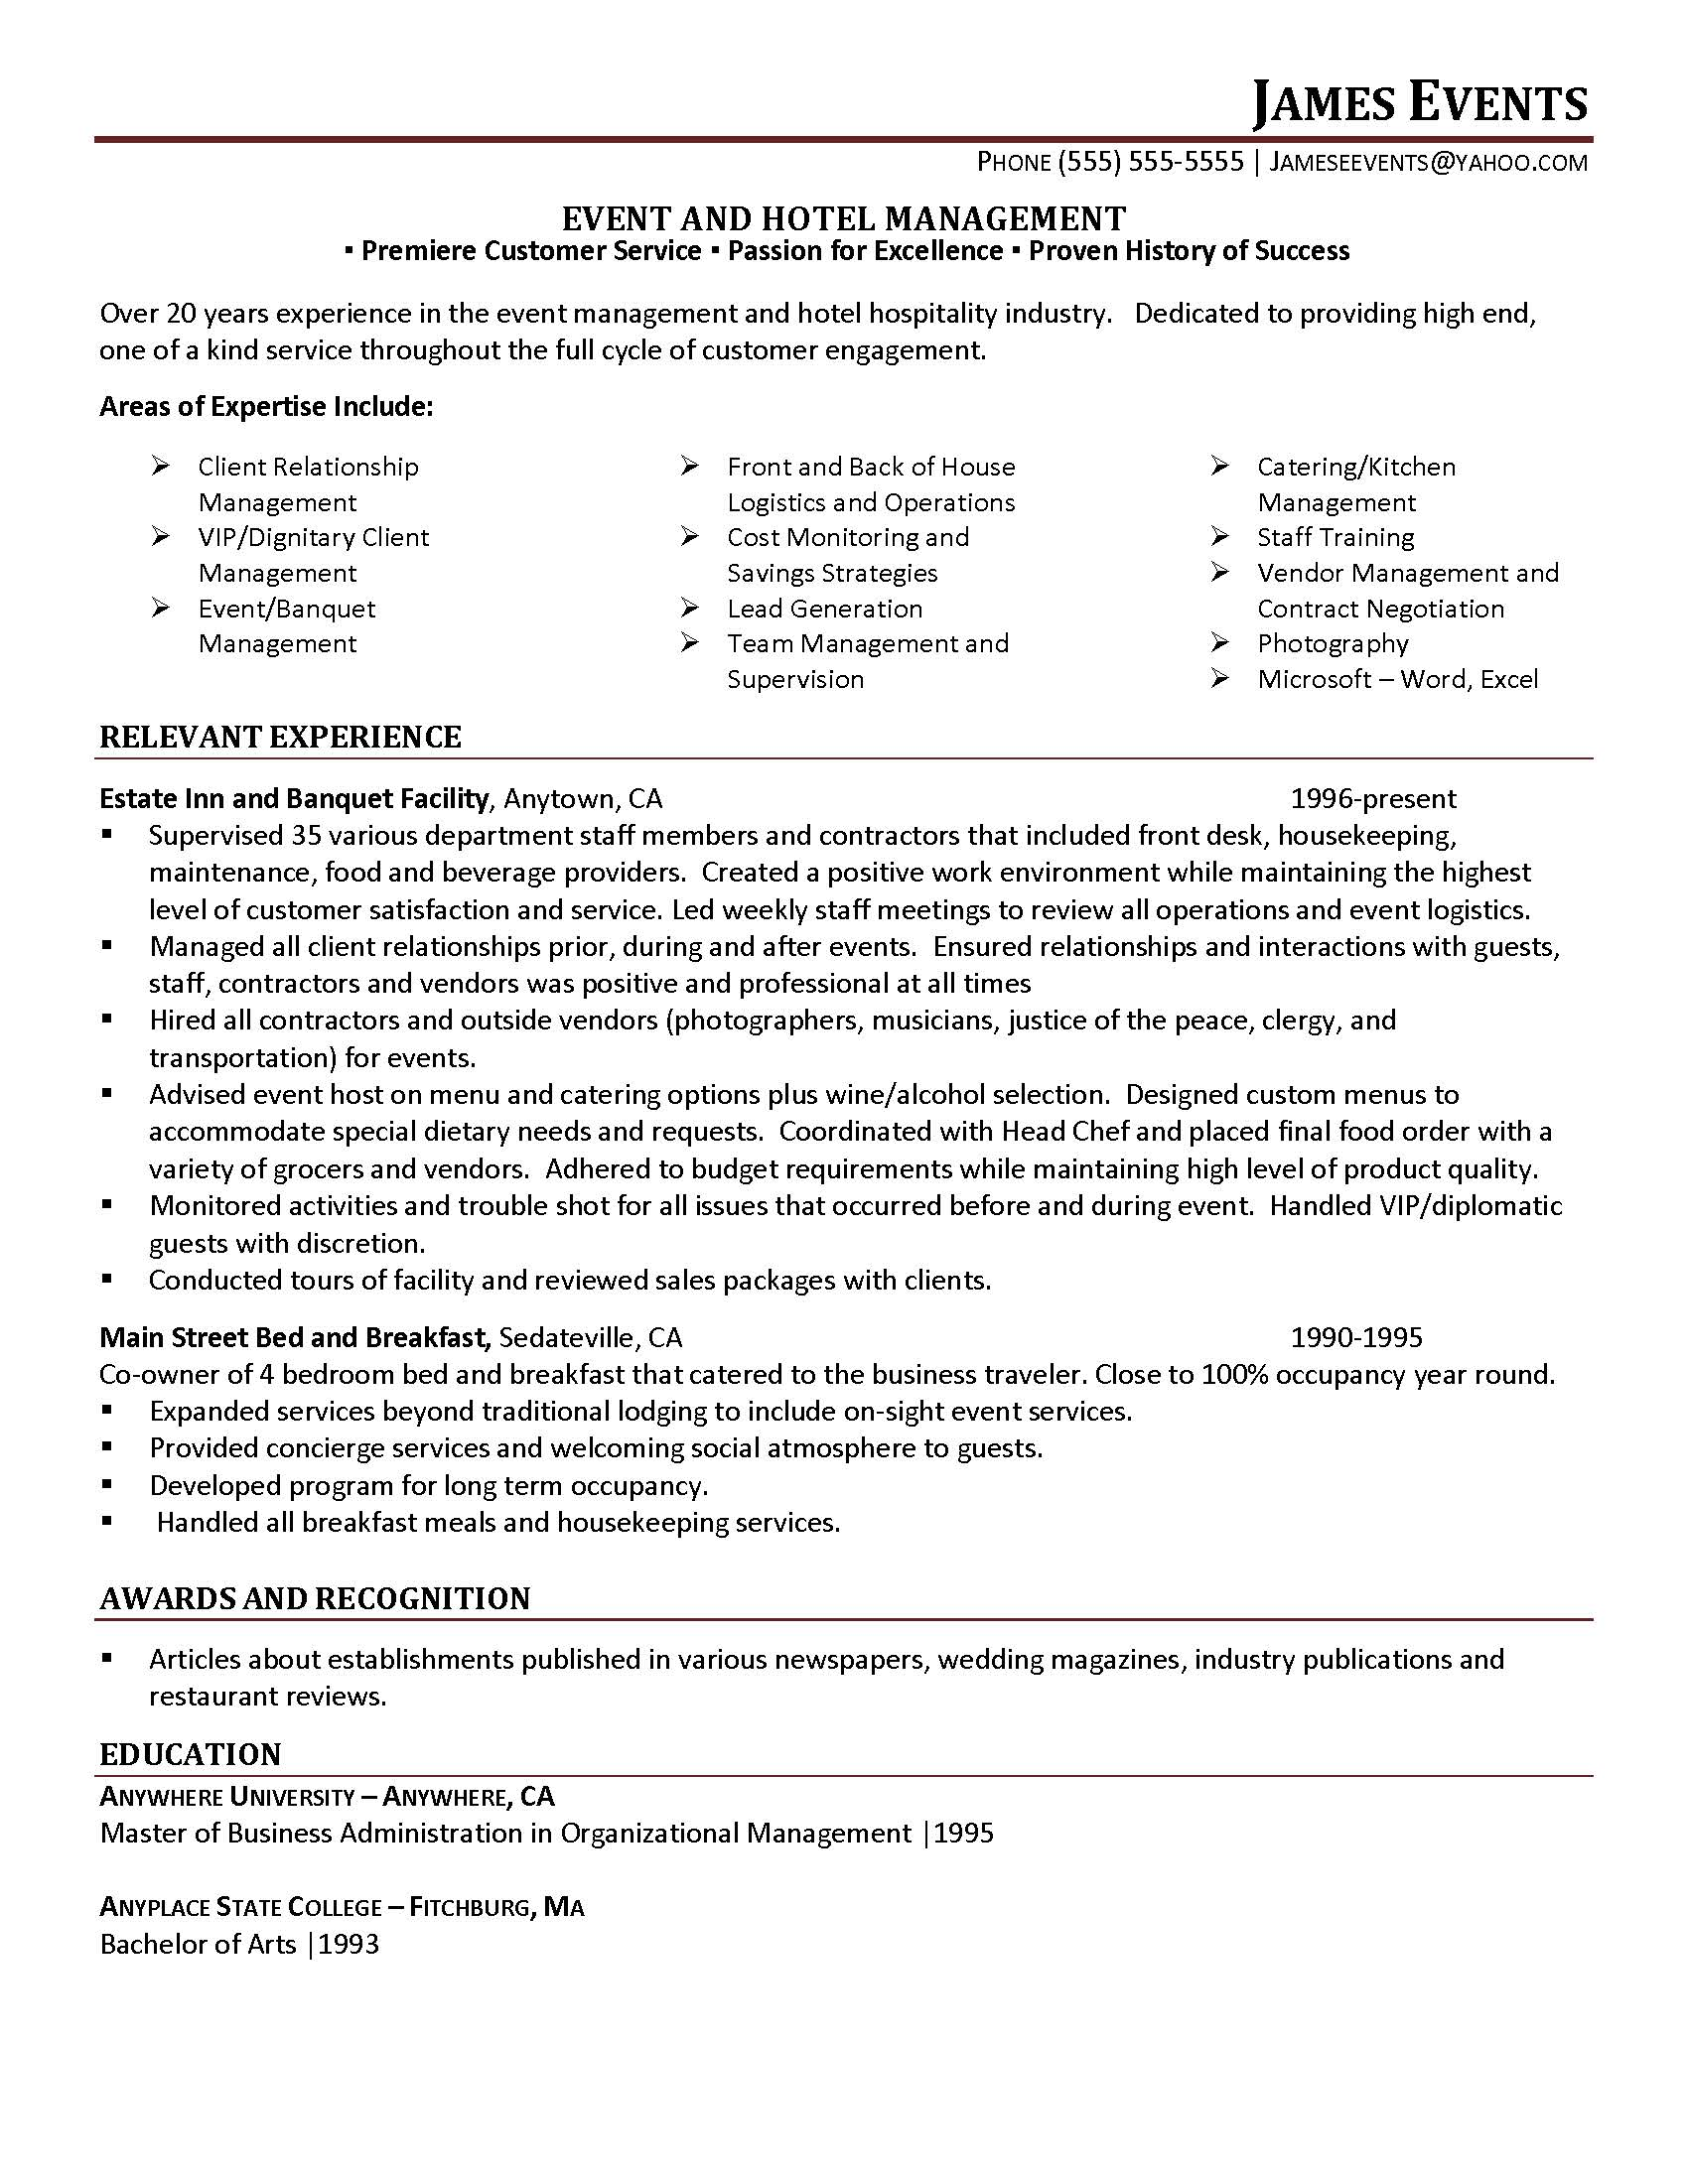 Event Manager Resume Examples - Examples of Resumes